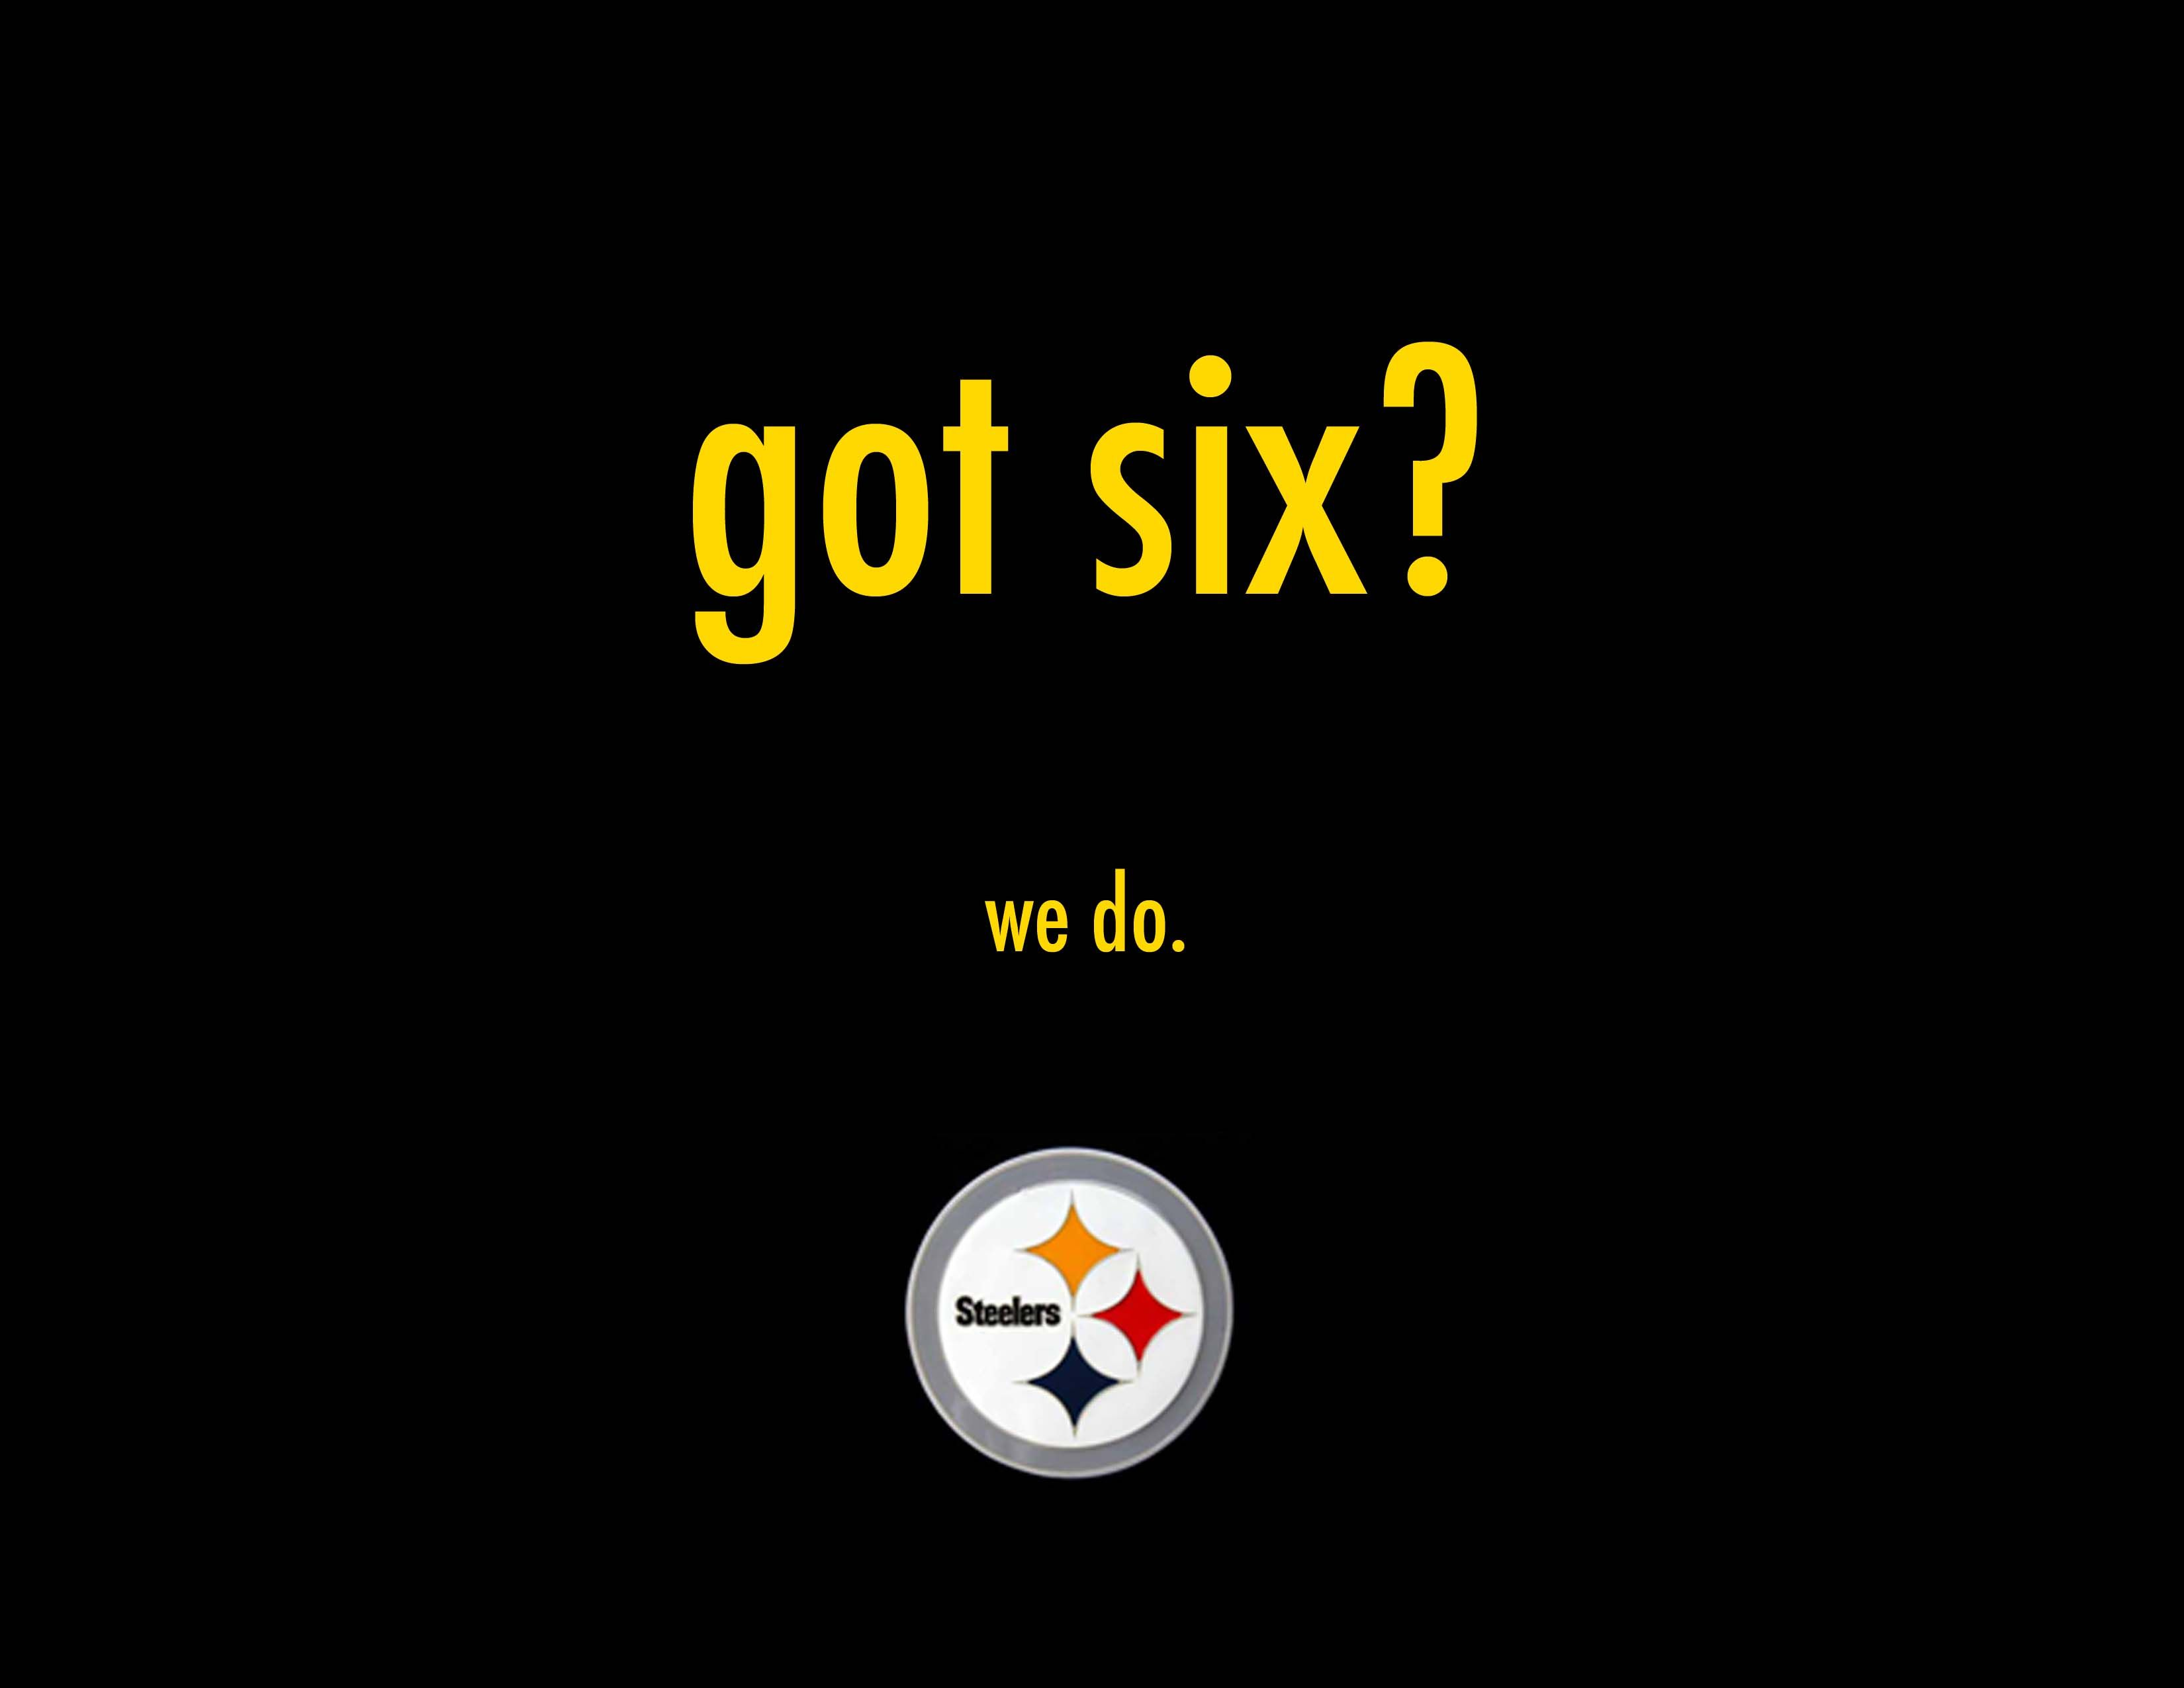 Pittsburgh steelers 7 wallpaper, download free pittsburgh